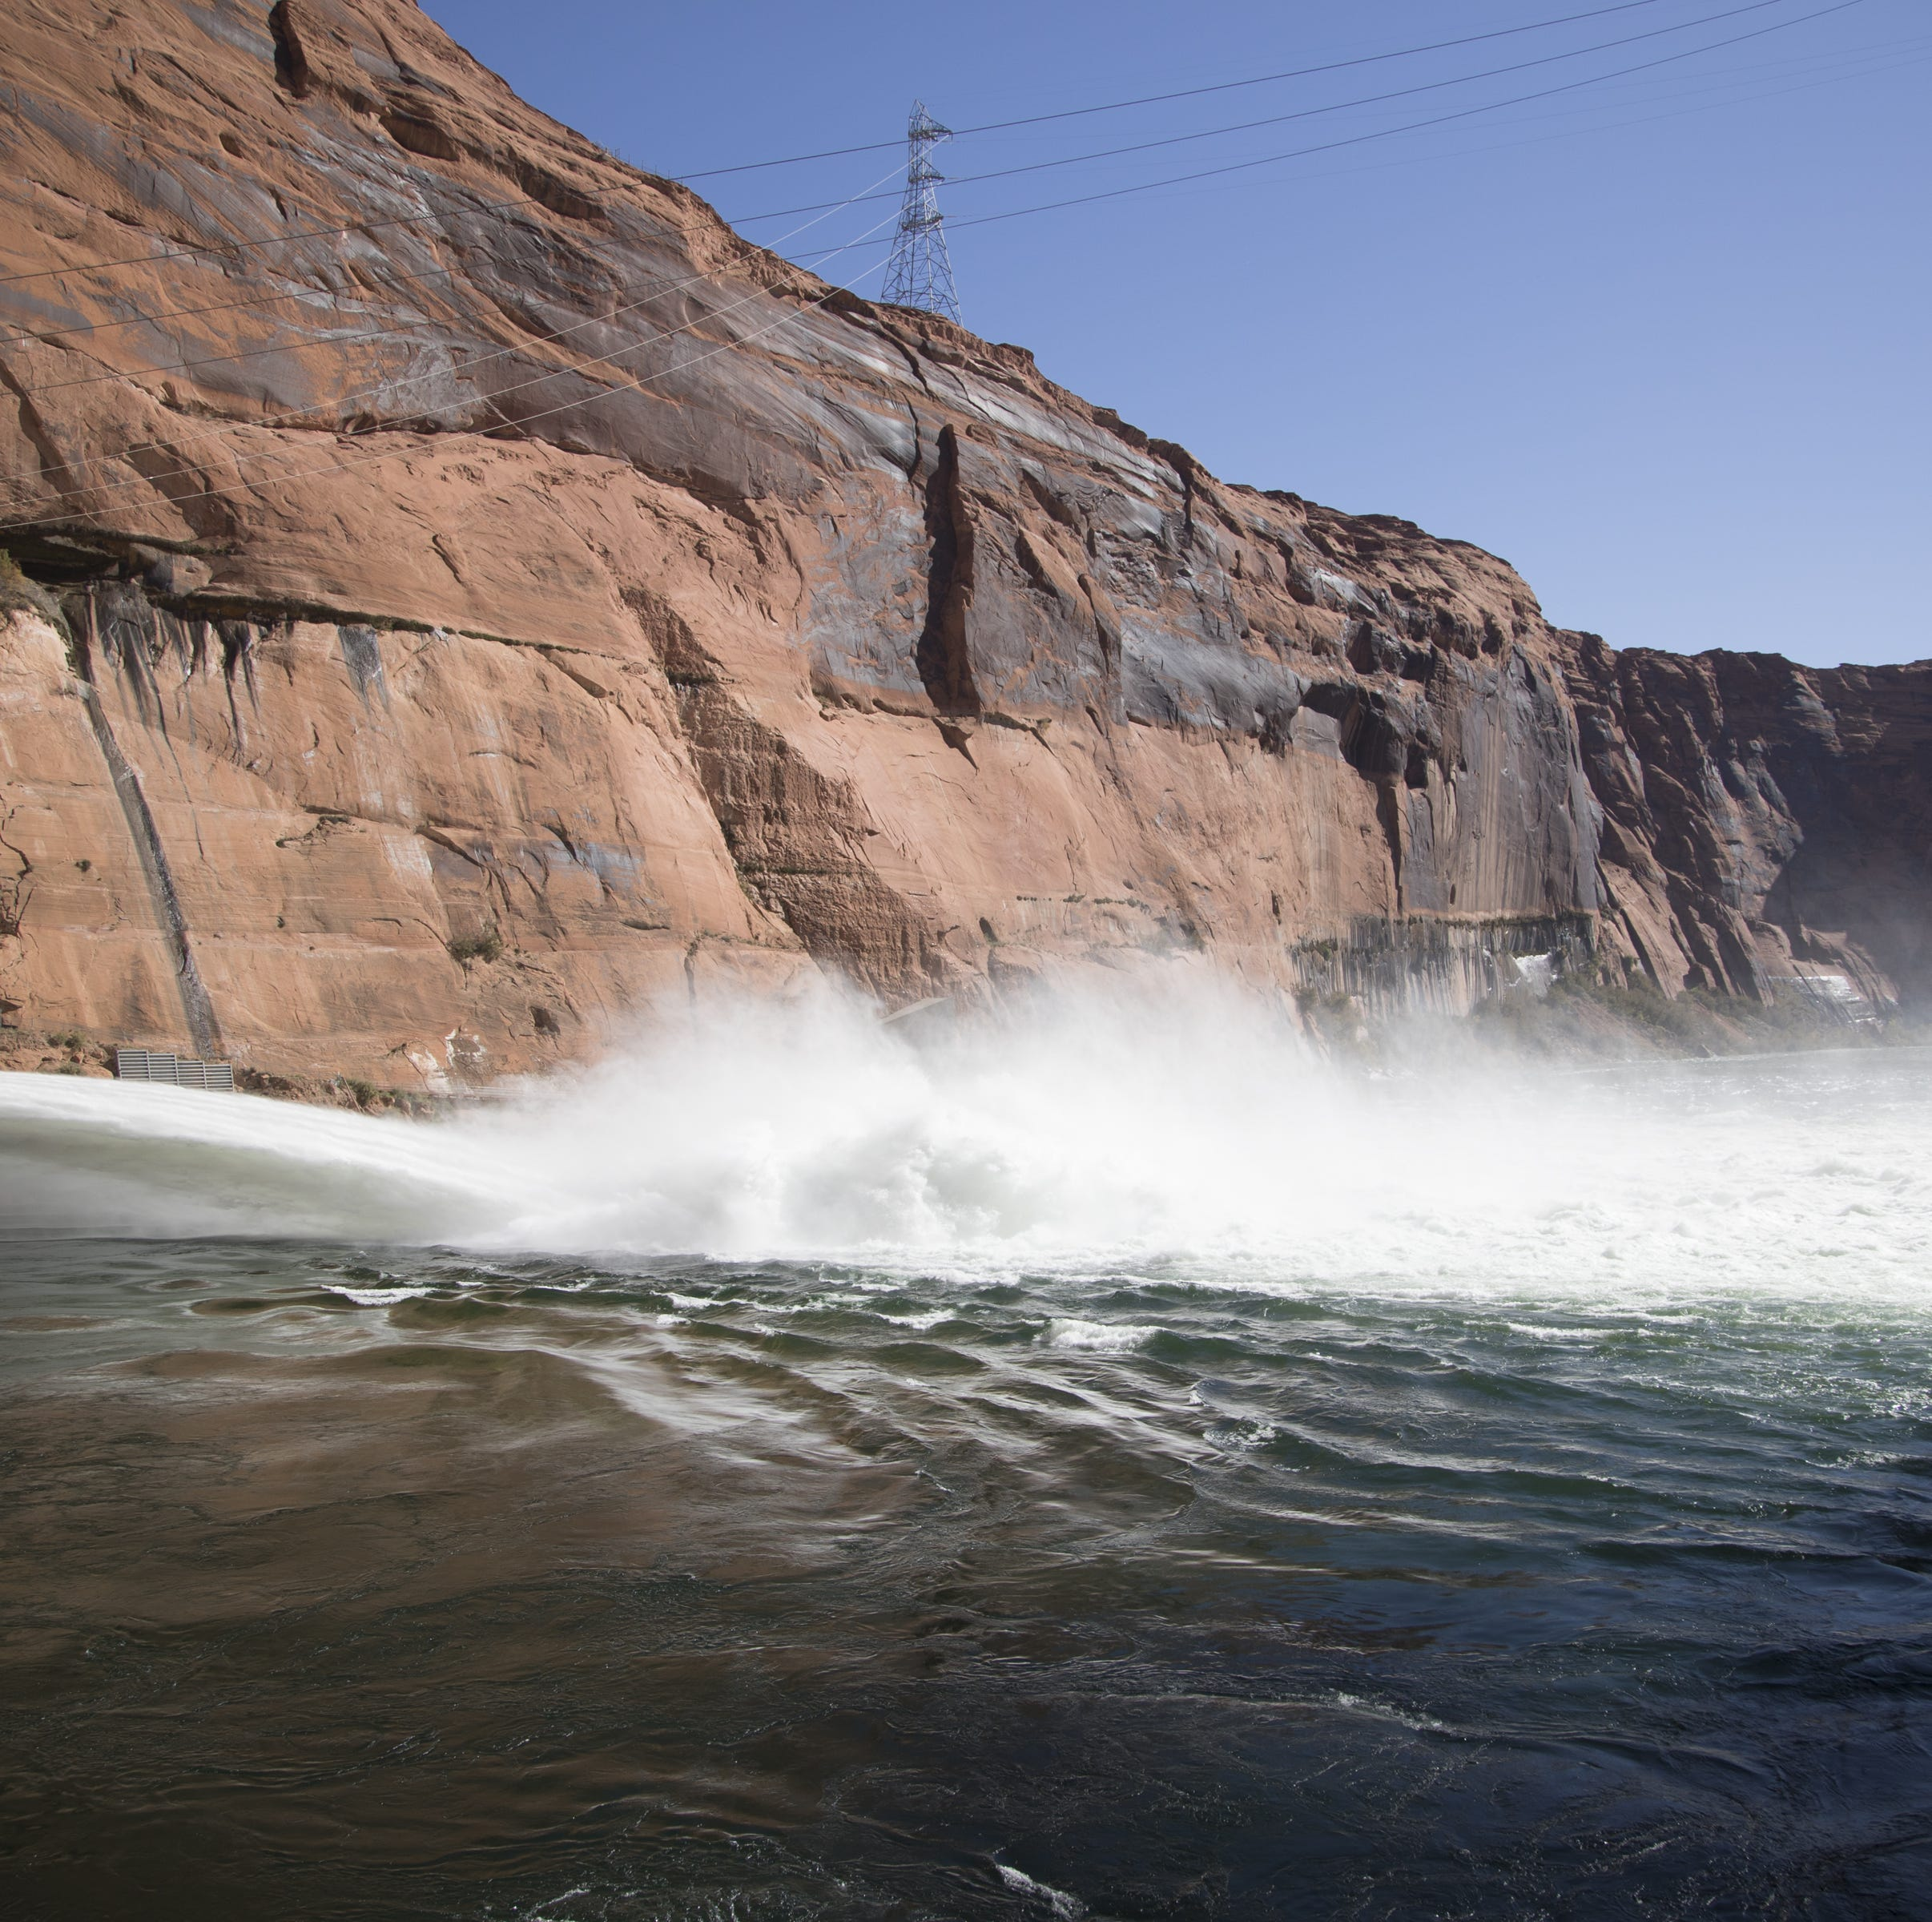 Arizona is on the brink of setting off another Colorado River water war